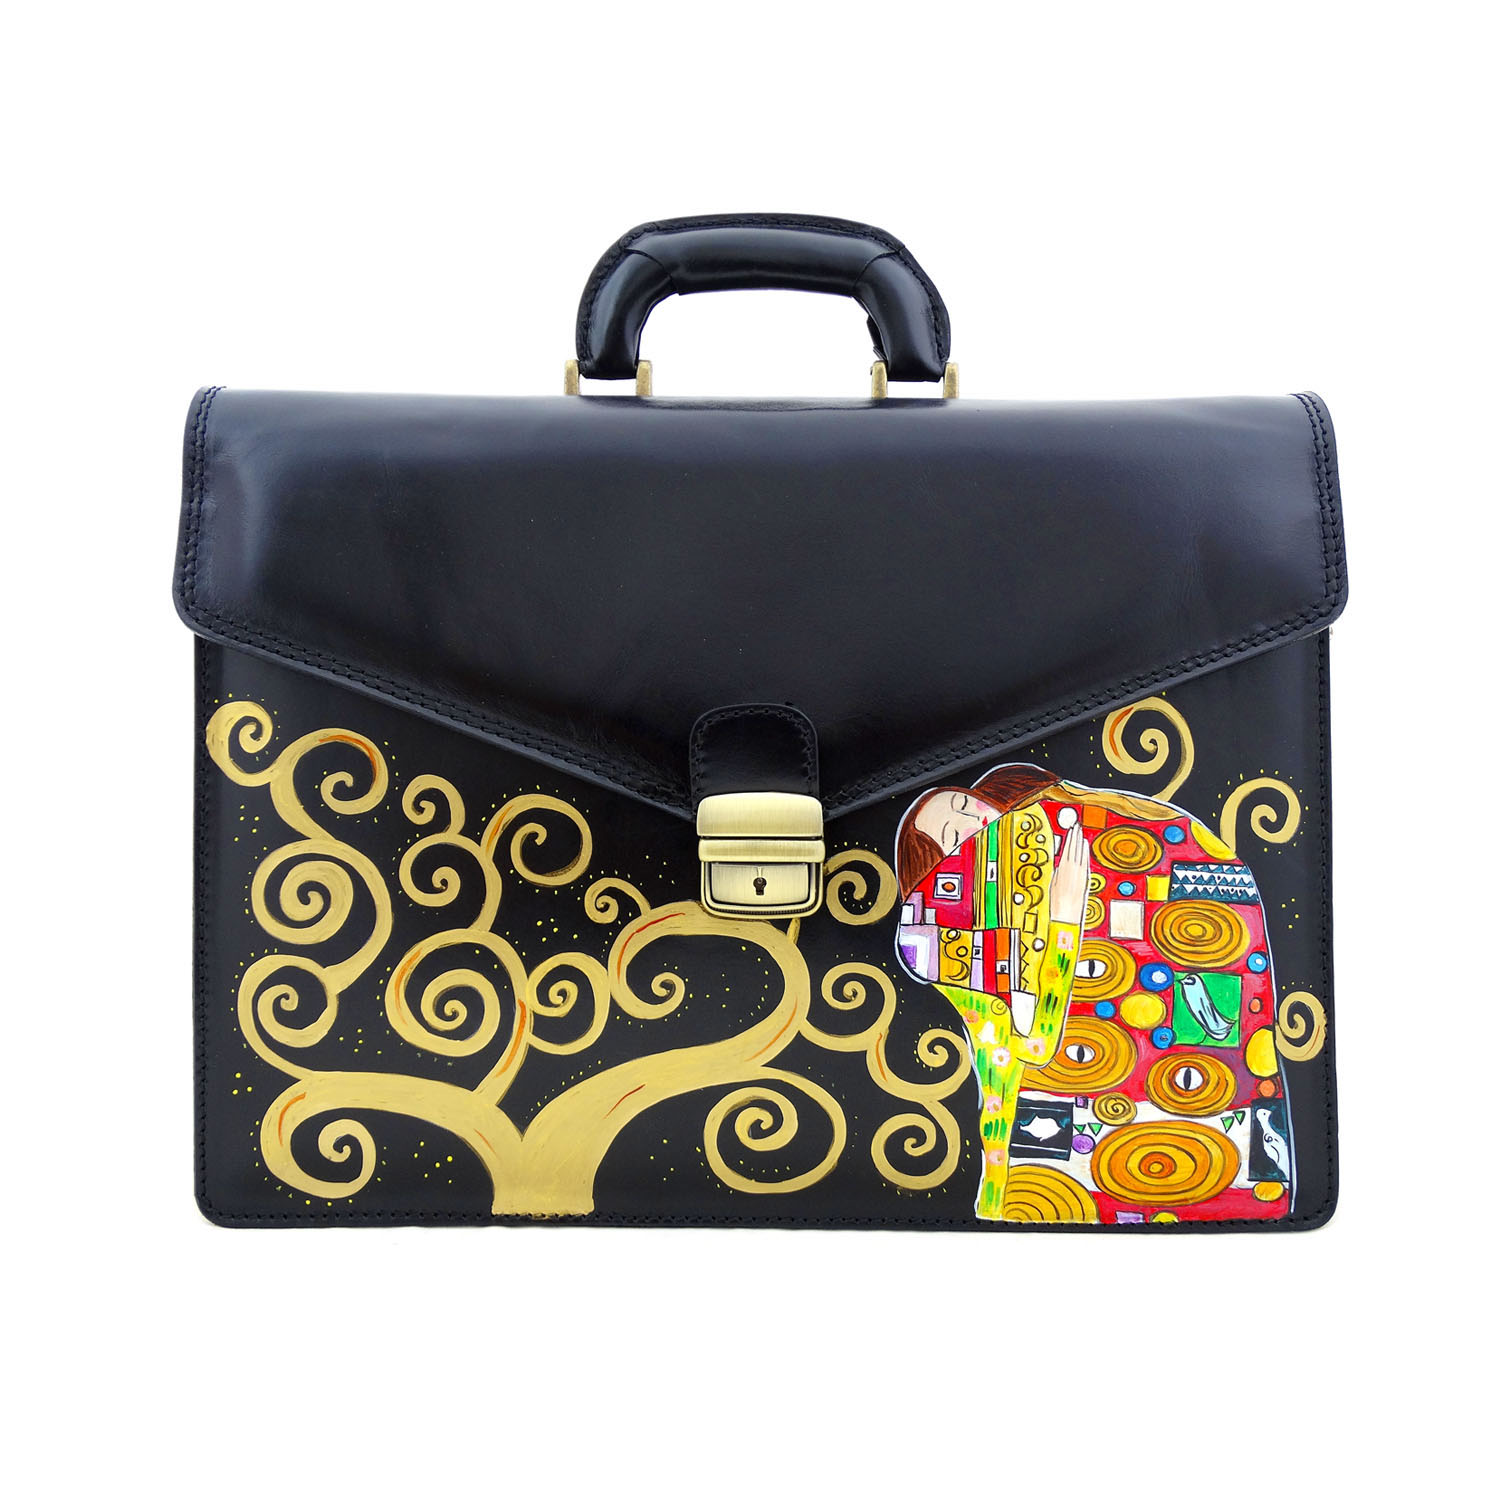 Hand-painted bag - The embrace by Klimt